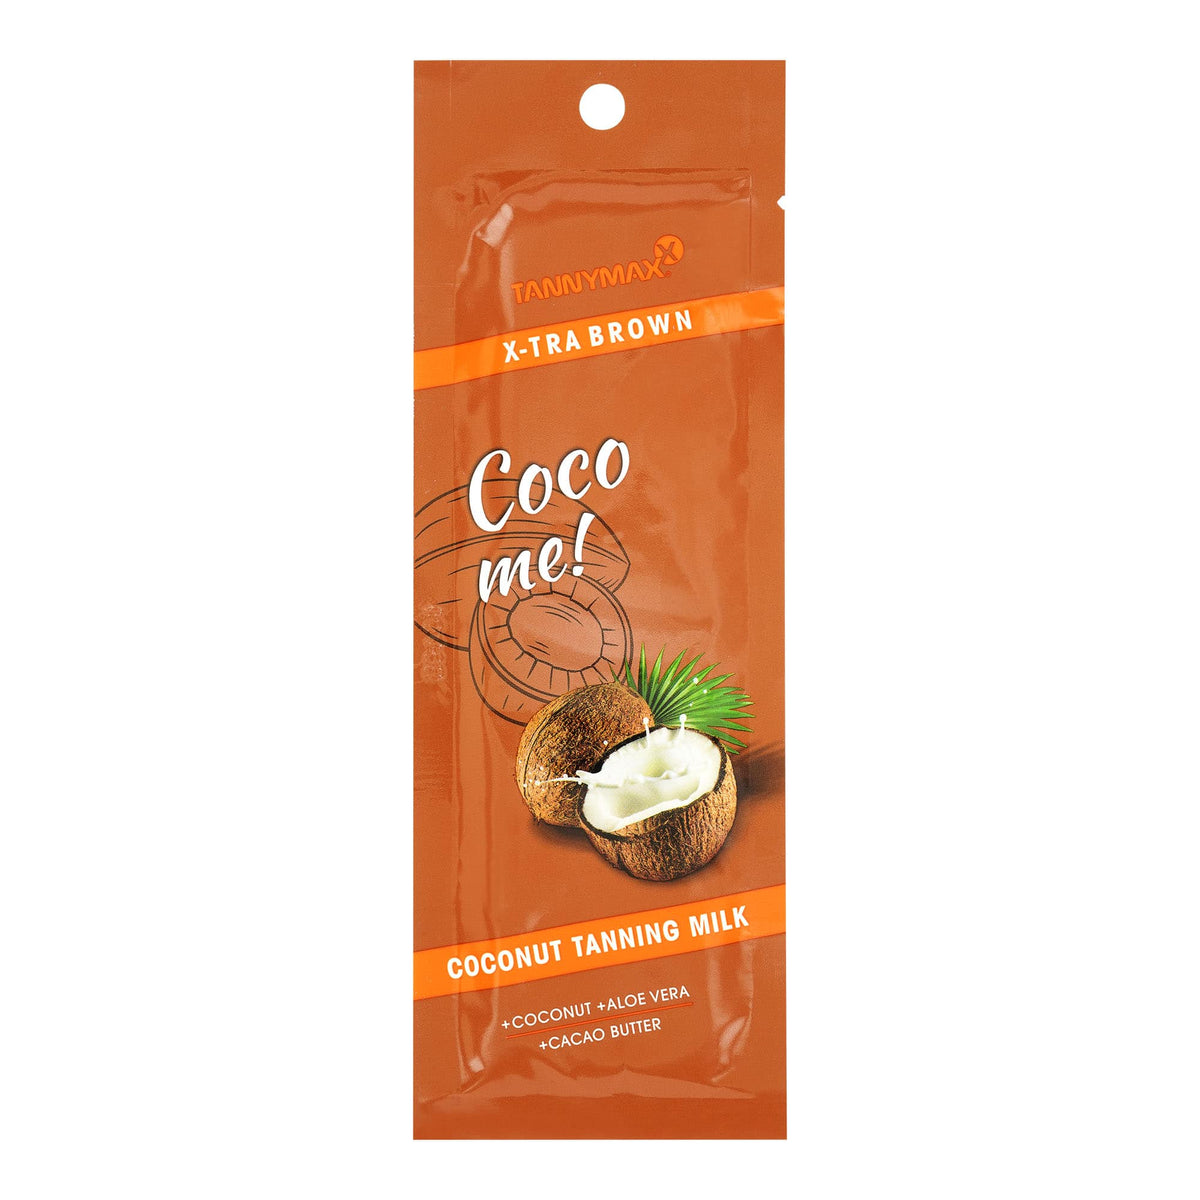 X-tra Brown Coconut Tanning Milk